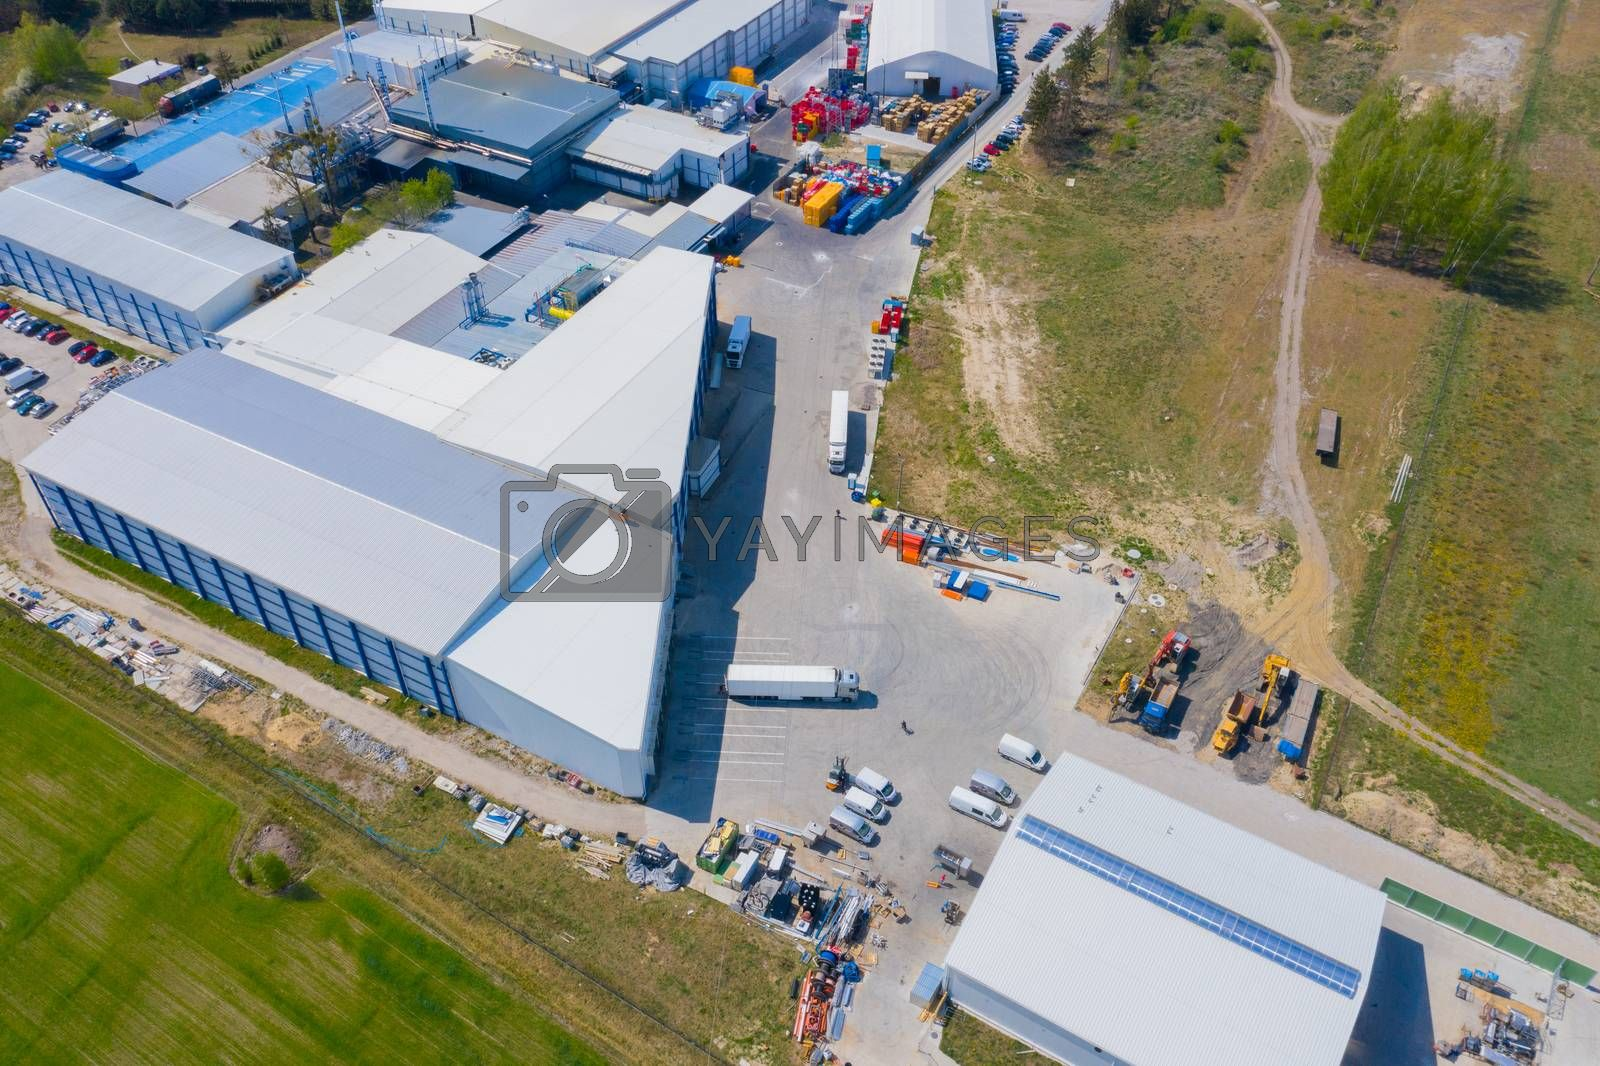 Aerial view of goods warehouse. Logistics center in industrial c by jackald